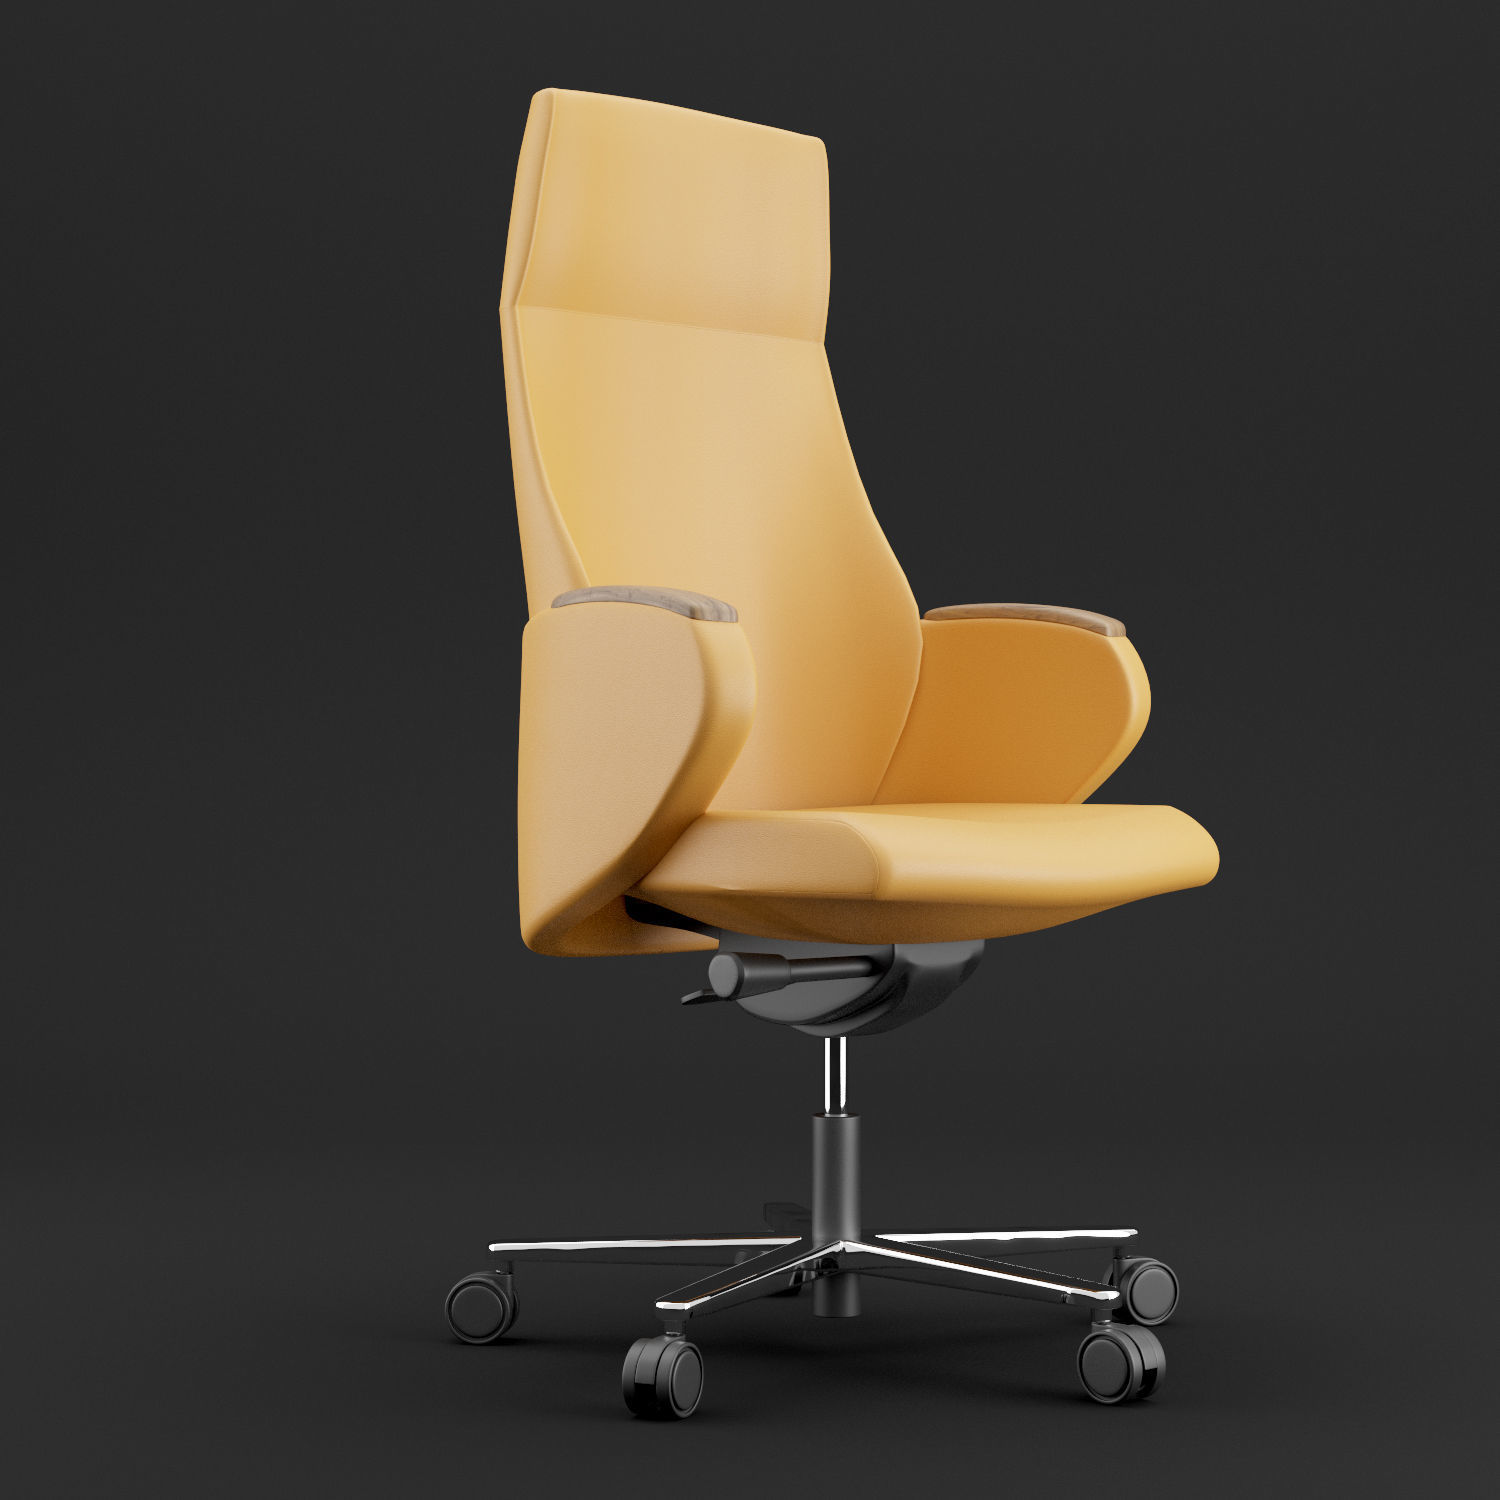 Modern leather office chair | 3D model